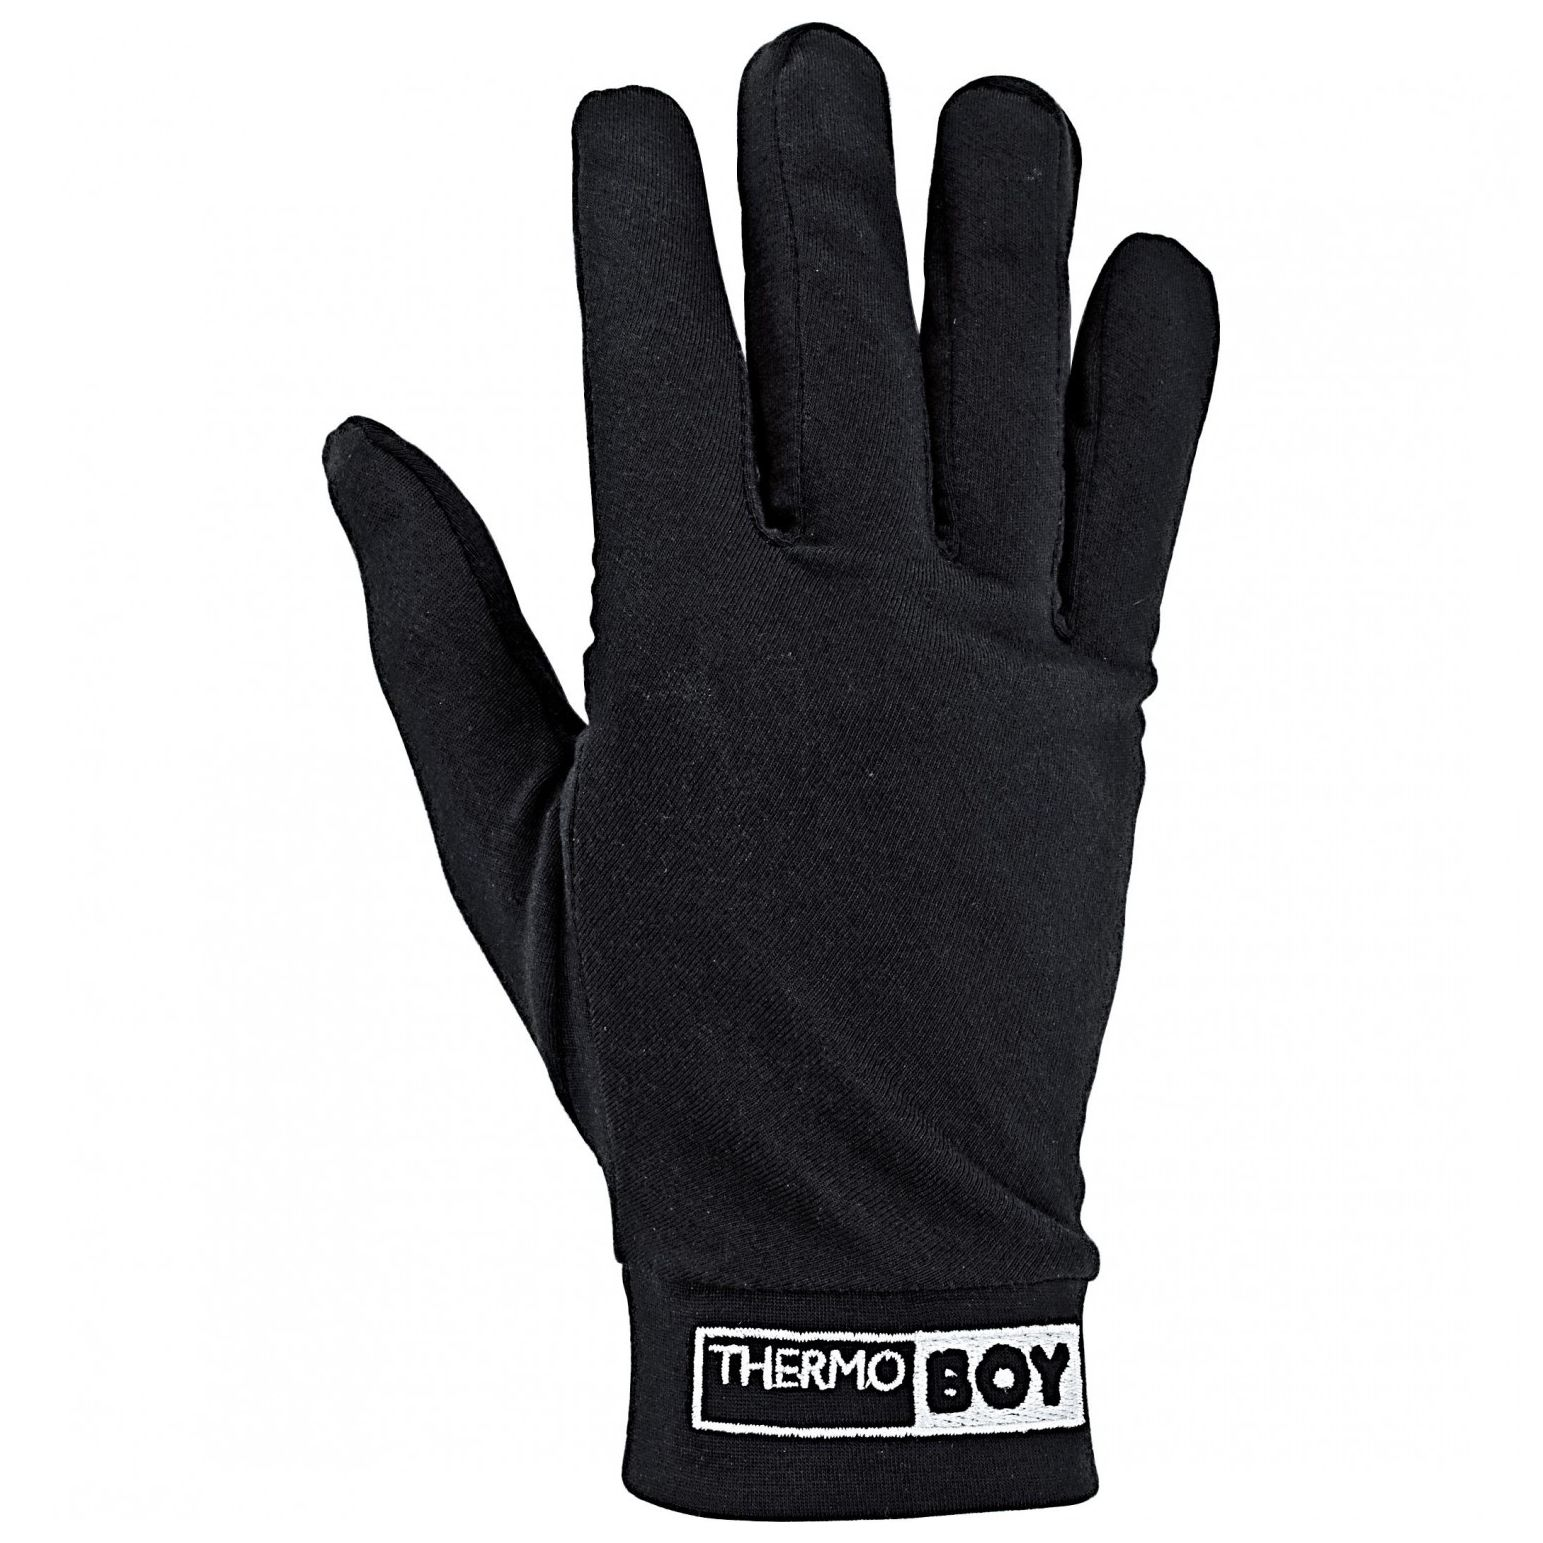 Guantes interiores Thermoboy 2.0